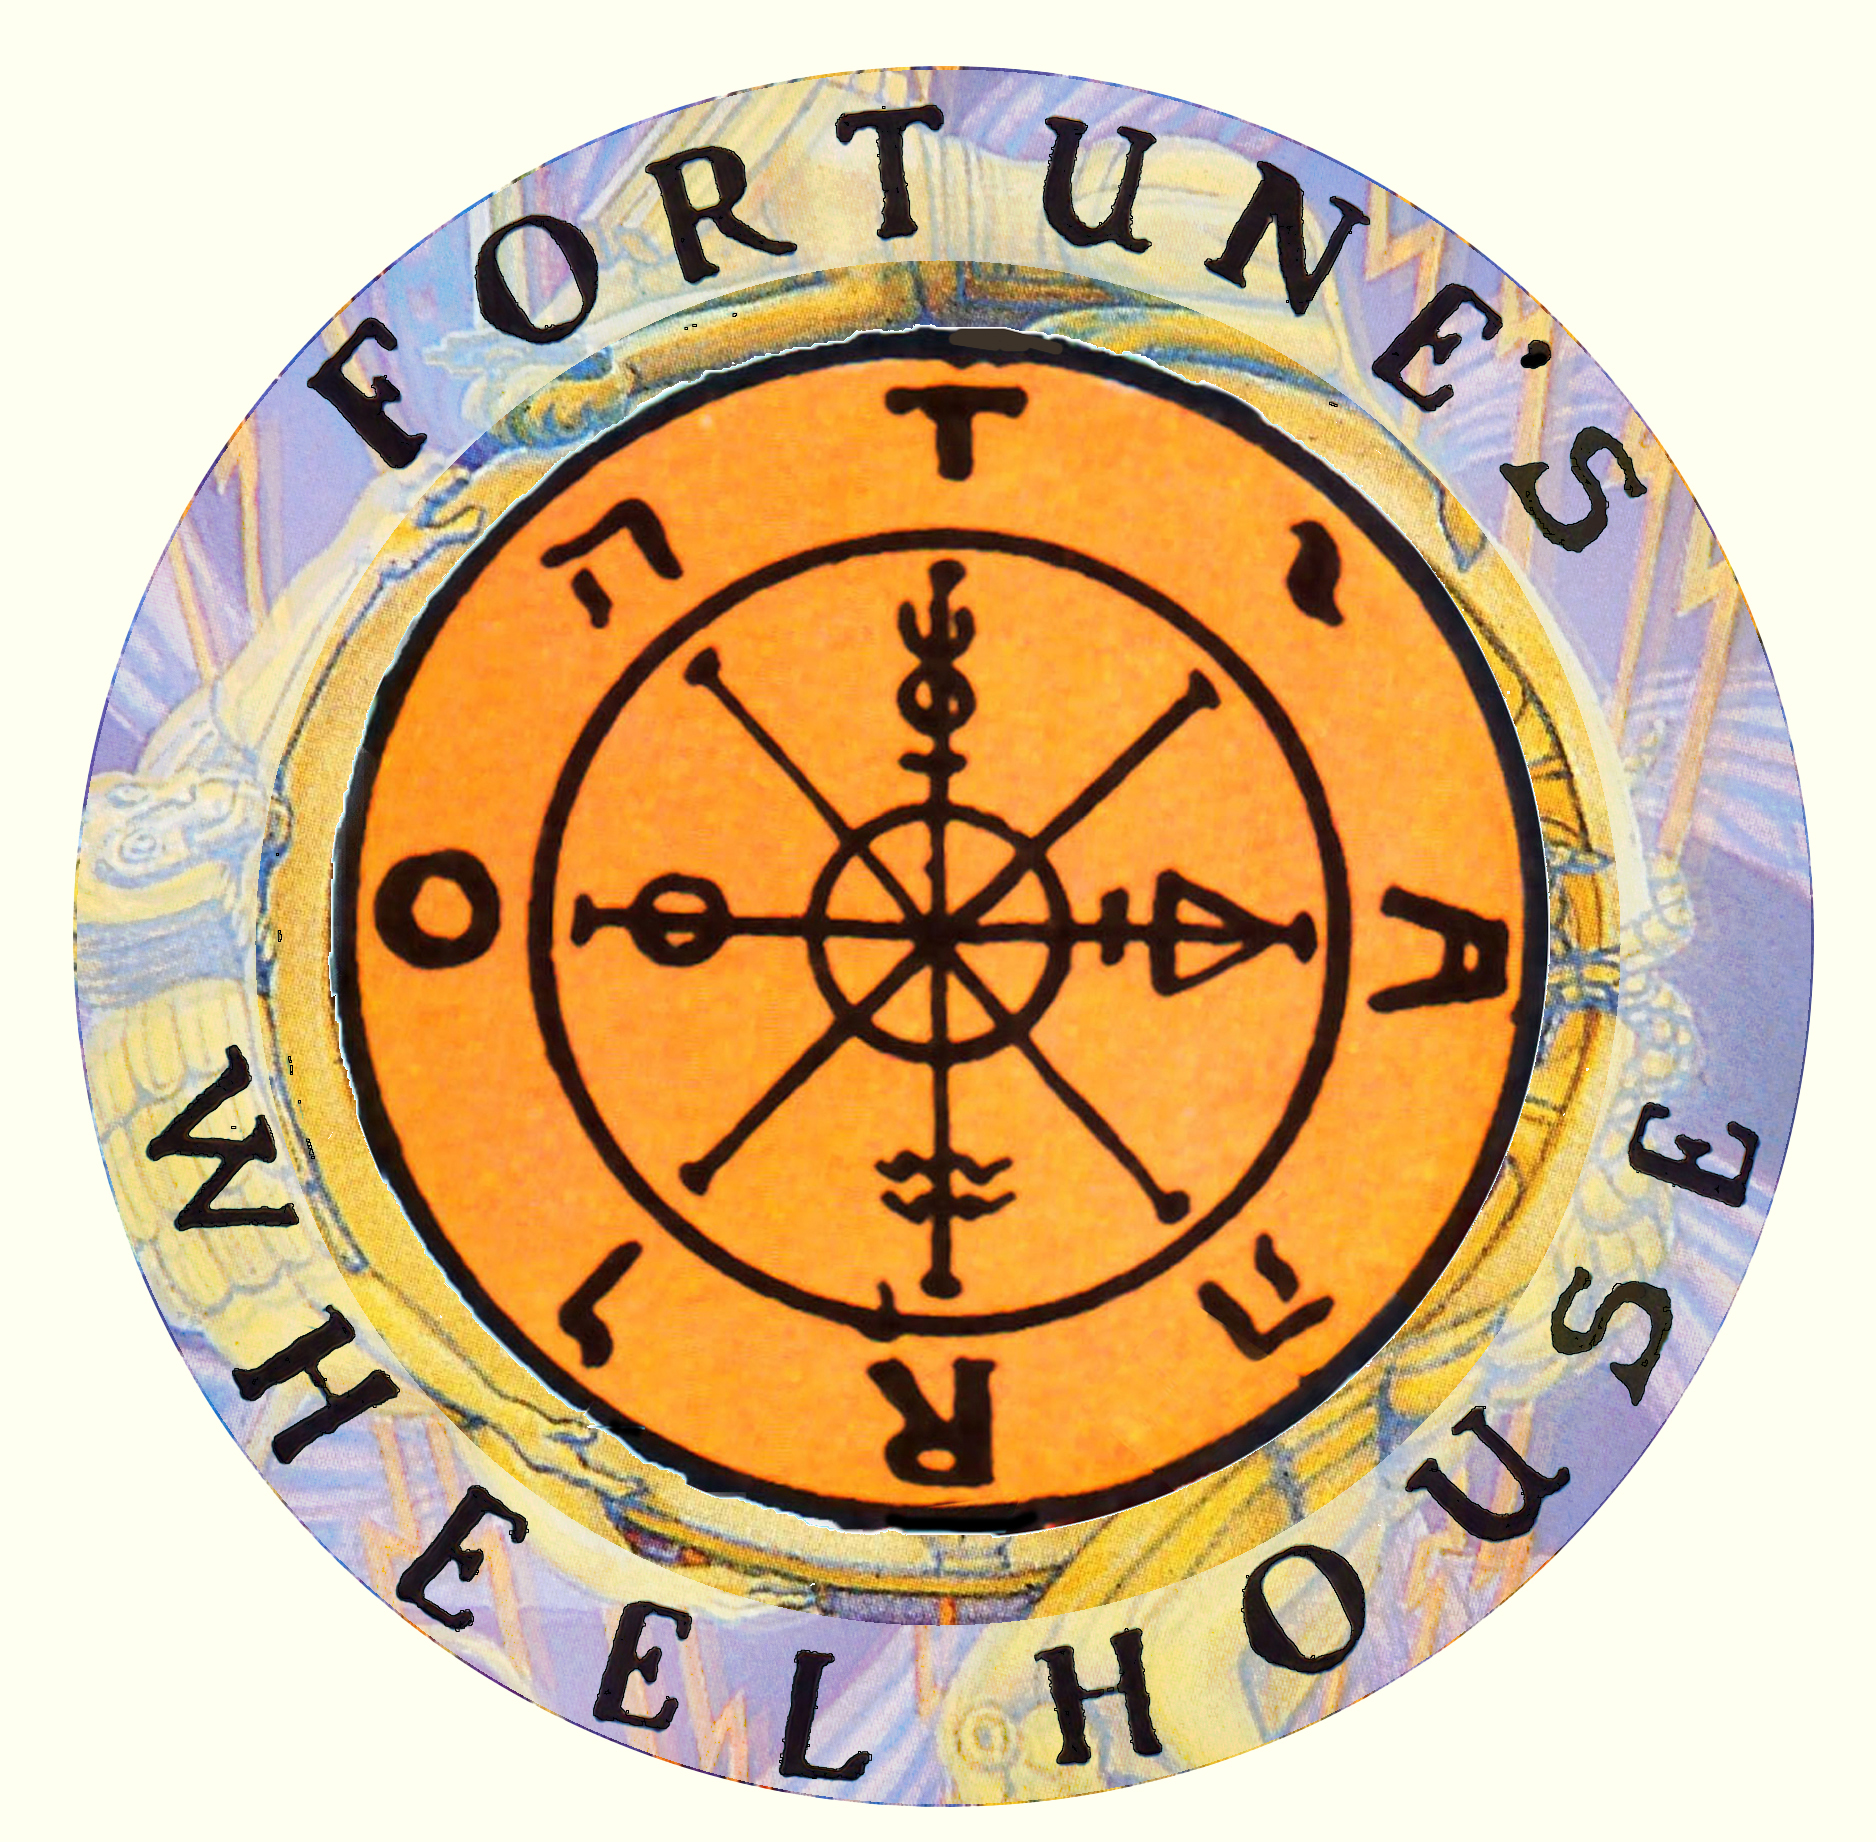 Fortunes wheelhouse round icon on ivory2.jpg